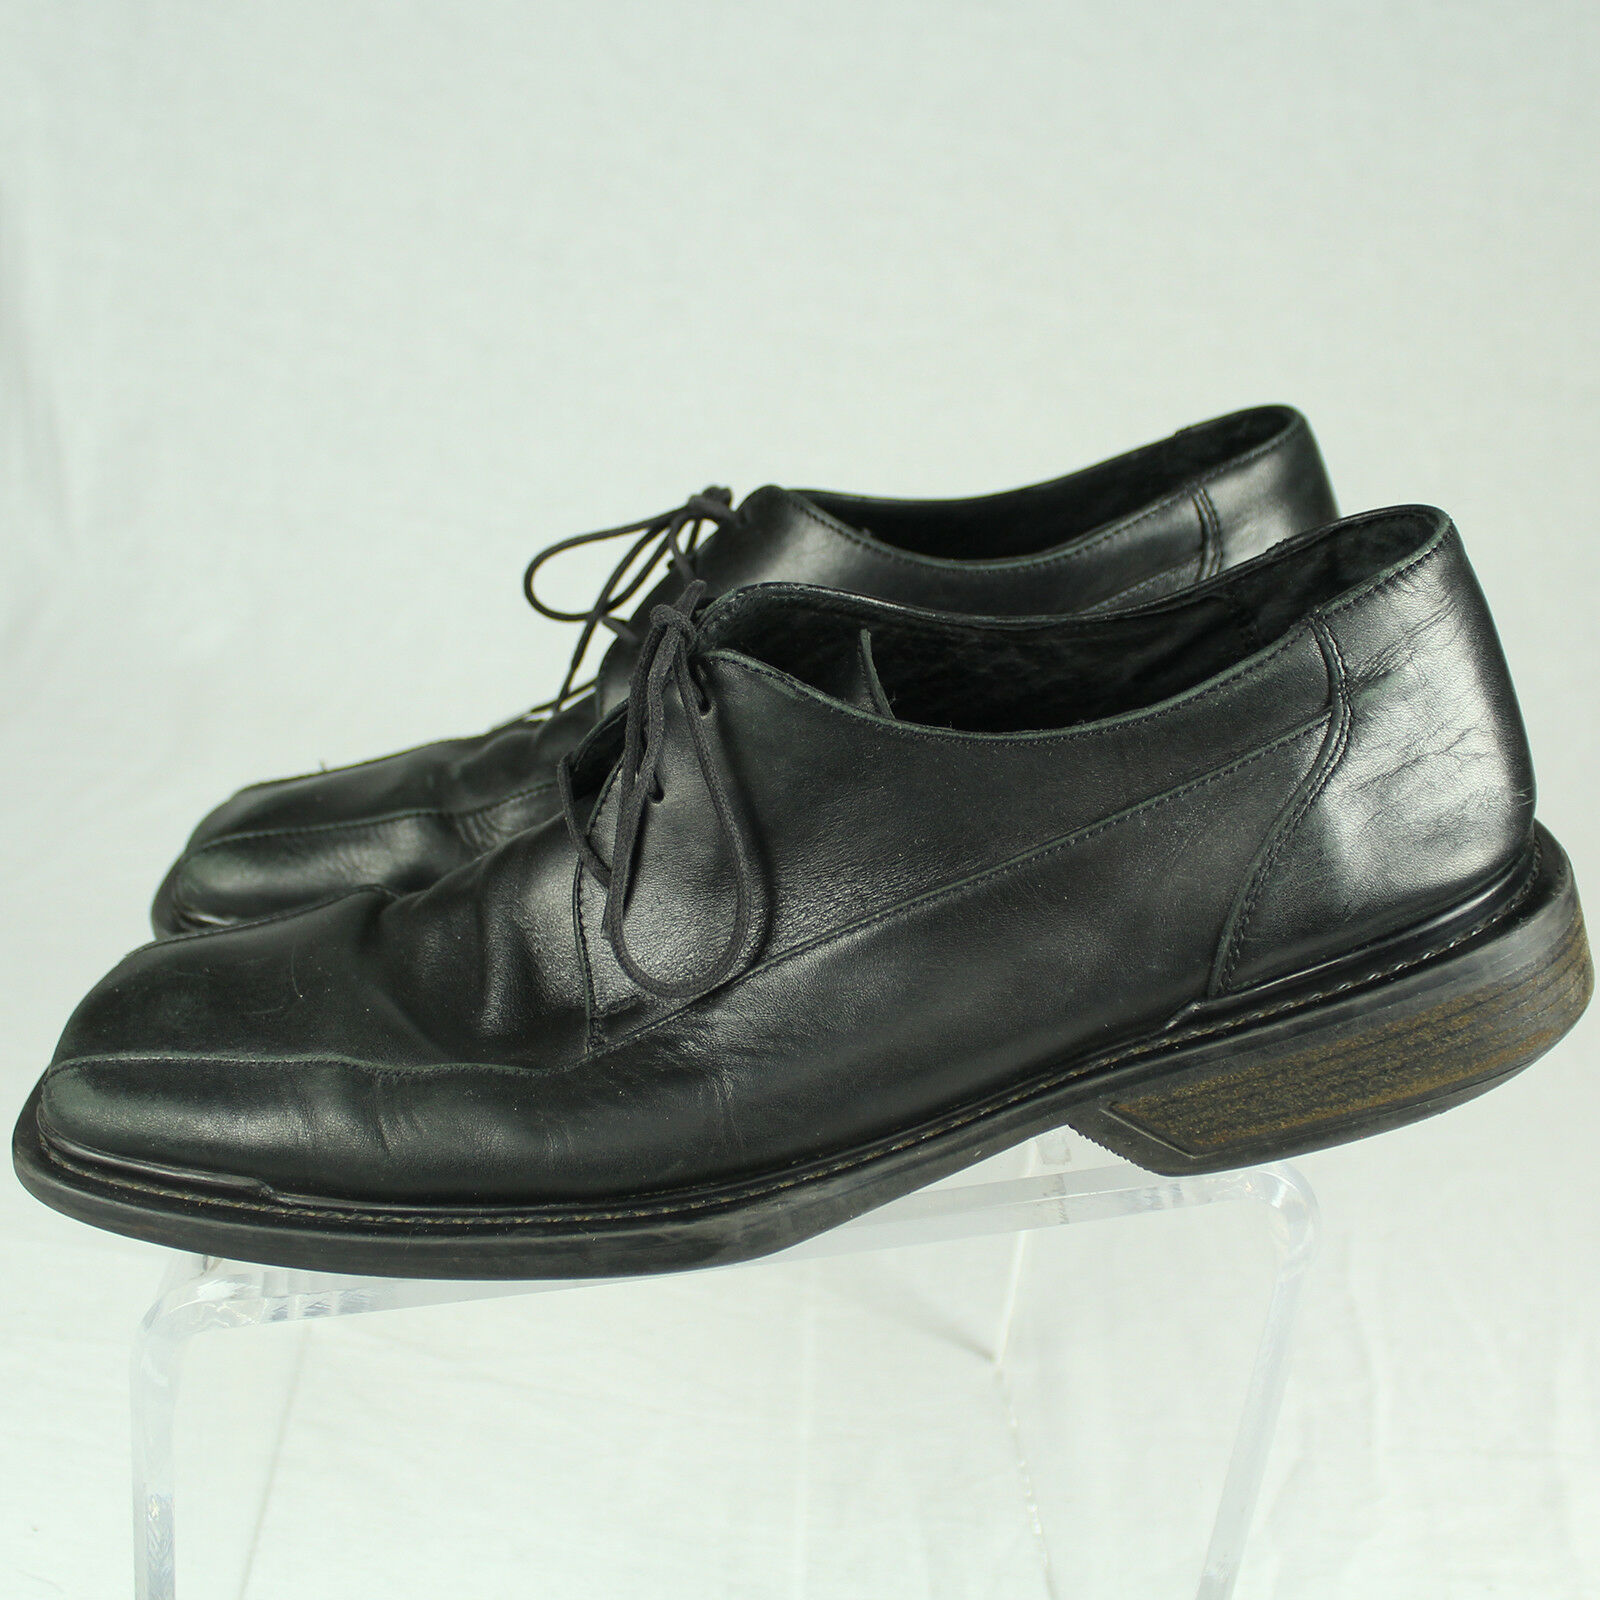 Kenneth Cole Reaction Black Leather Bicycle Square Toe Lace-Up Italy Shoe 10.5